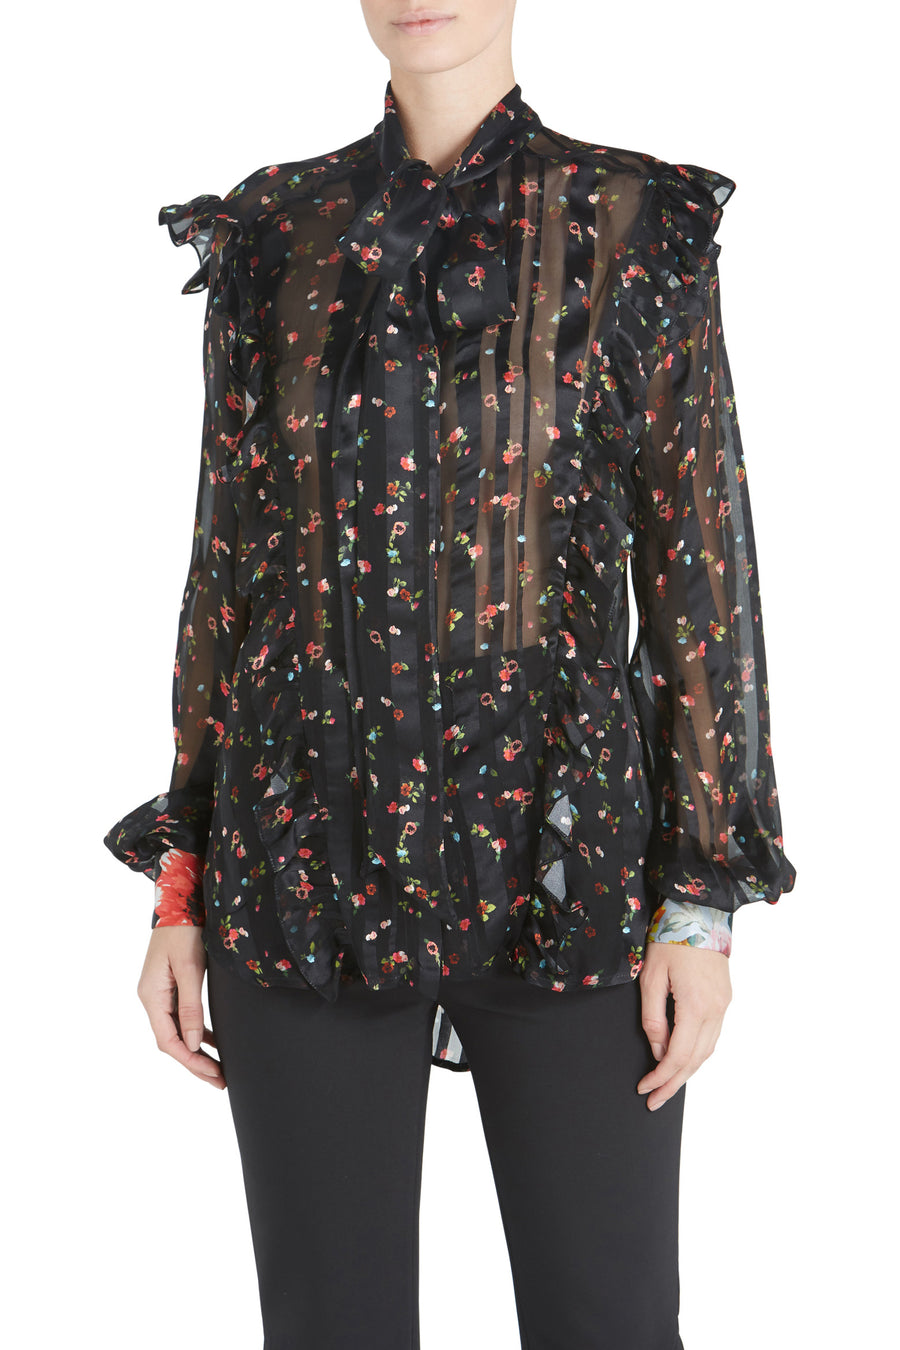 BILLY BLOUSE